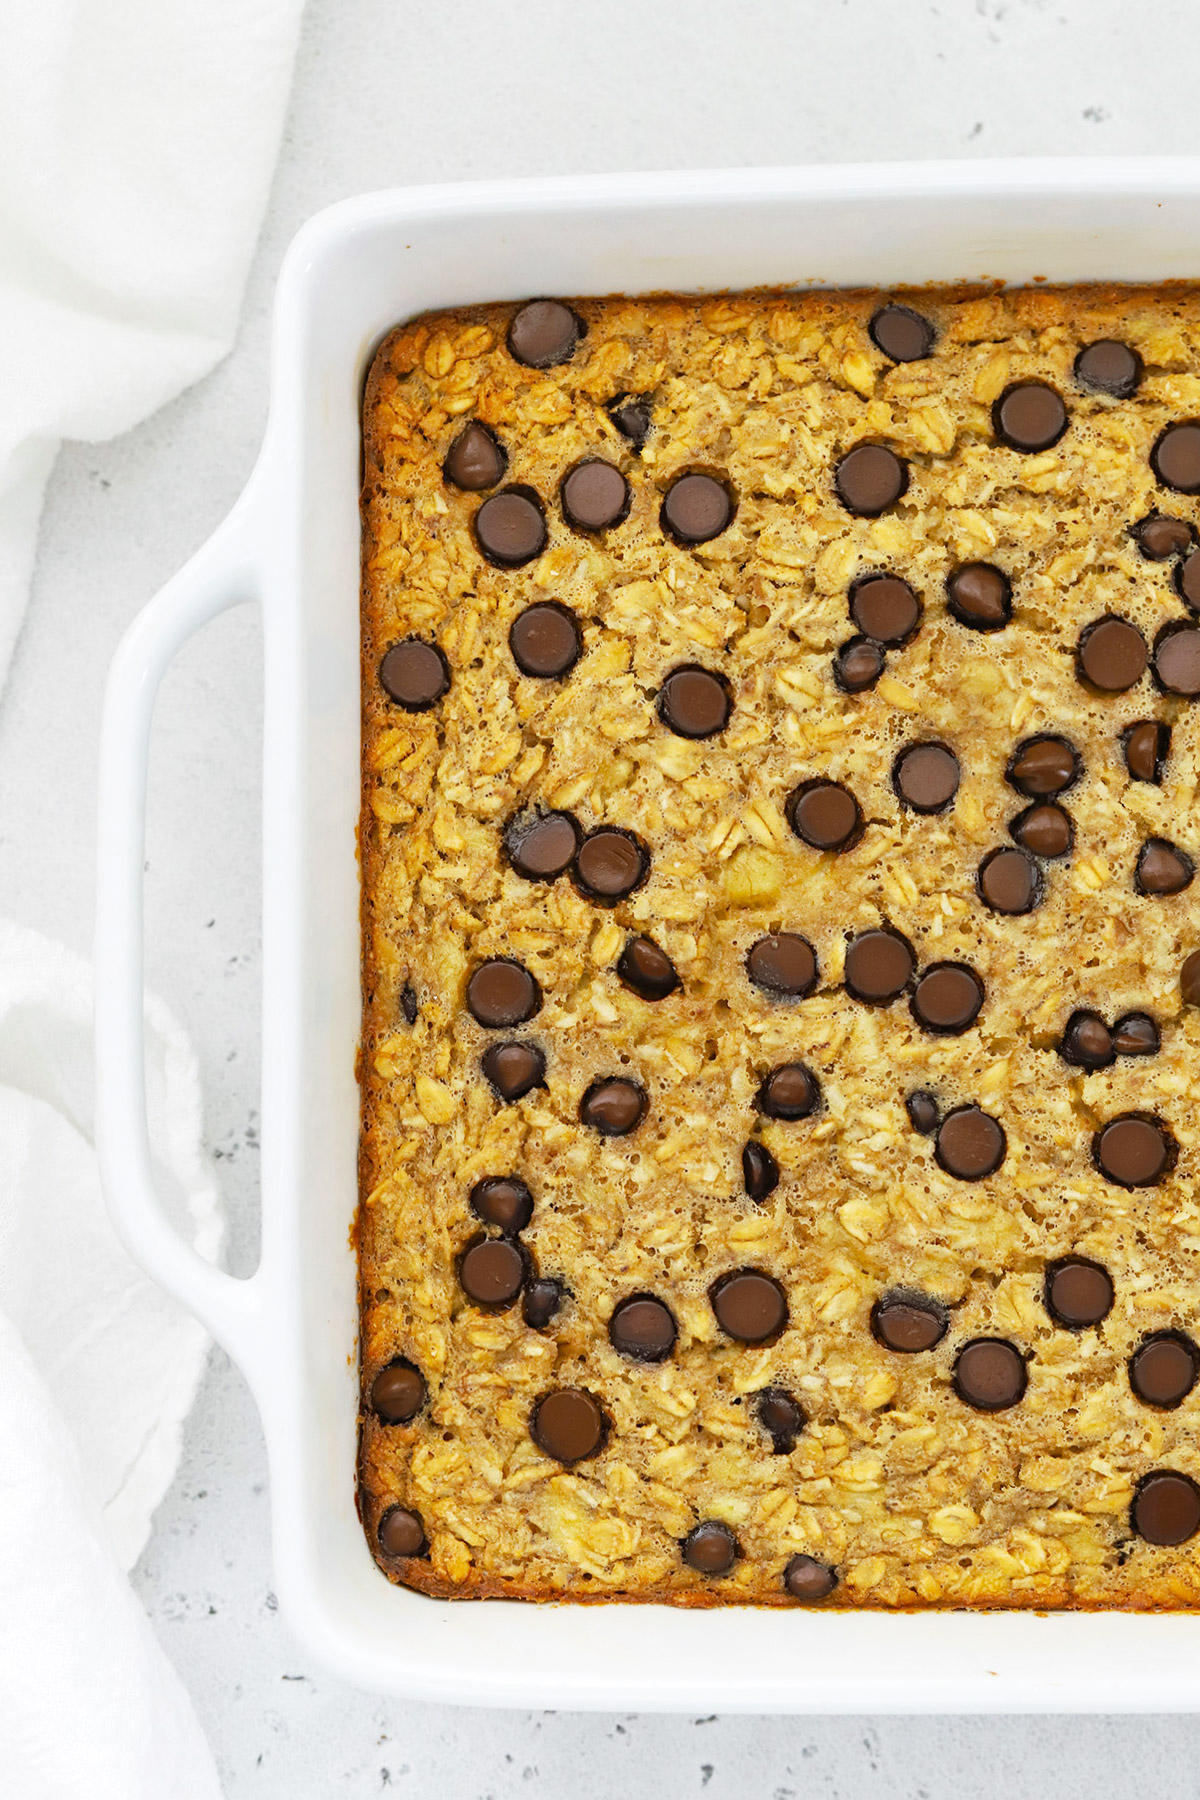 Overhead view of a pan of Chunky Monkey Baked Oatmeal fresh out of the oven